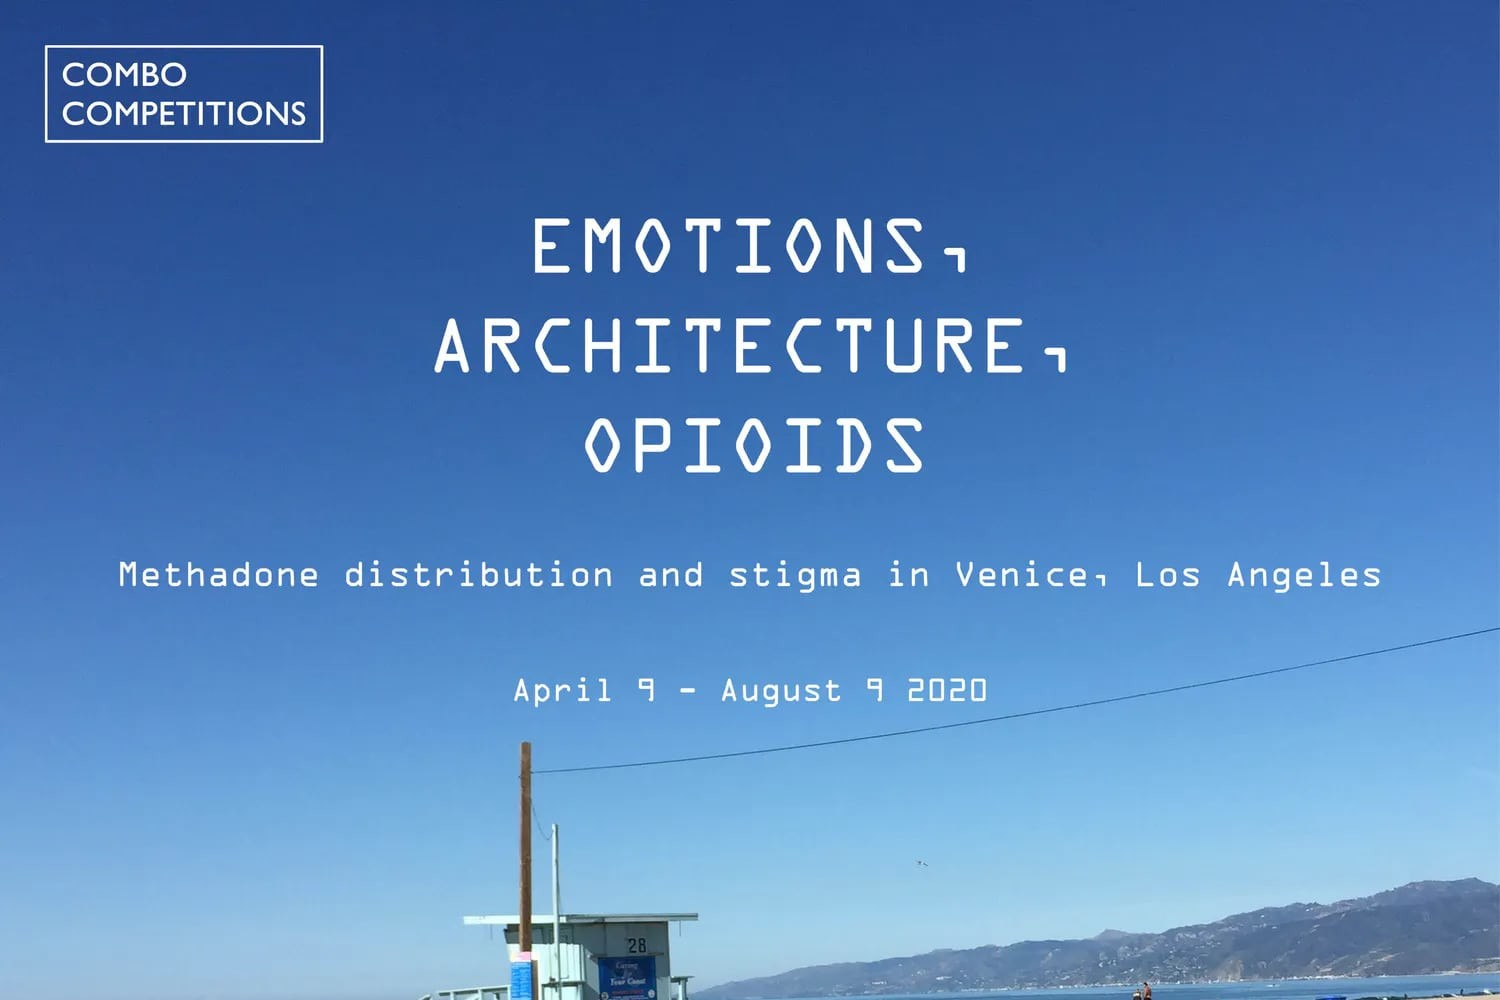 Call for Submission: Emotions, Architecture, Opioids